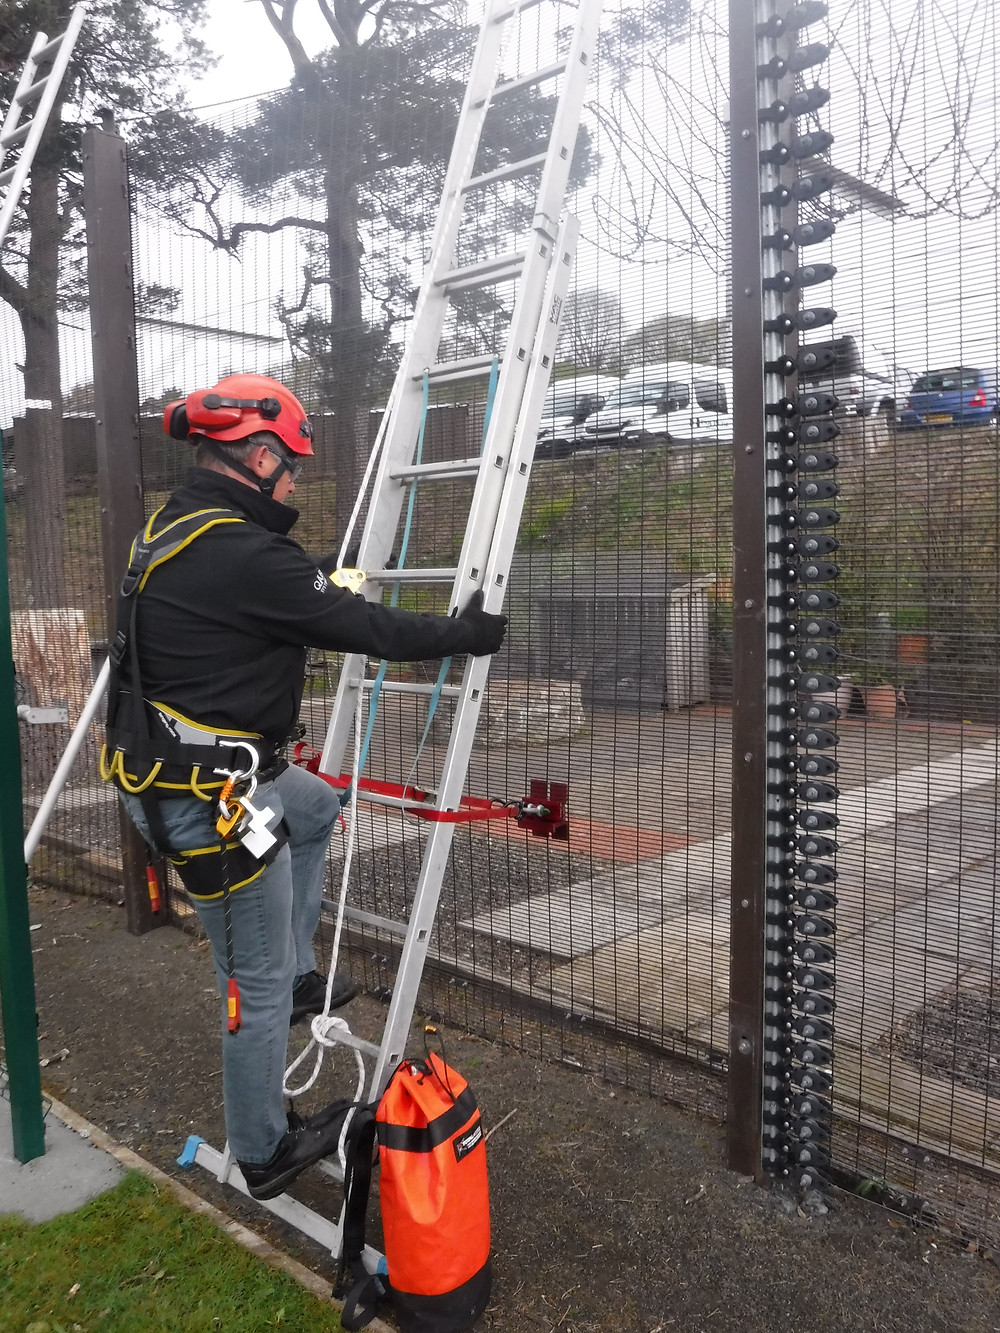 A silver ladder is attached to a 358 security mesh fence using a red QAB Systems bracket as a man in rope access gear climbs the ladder